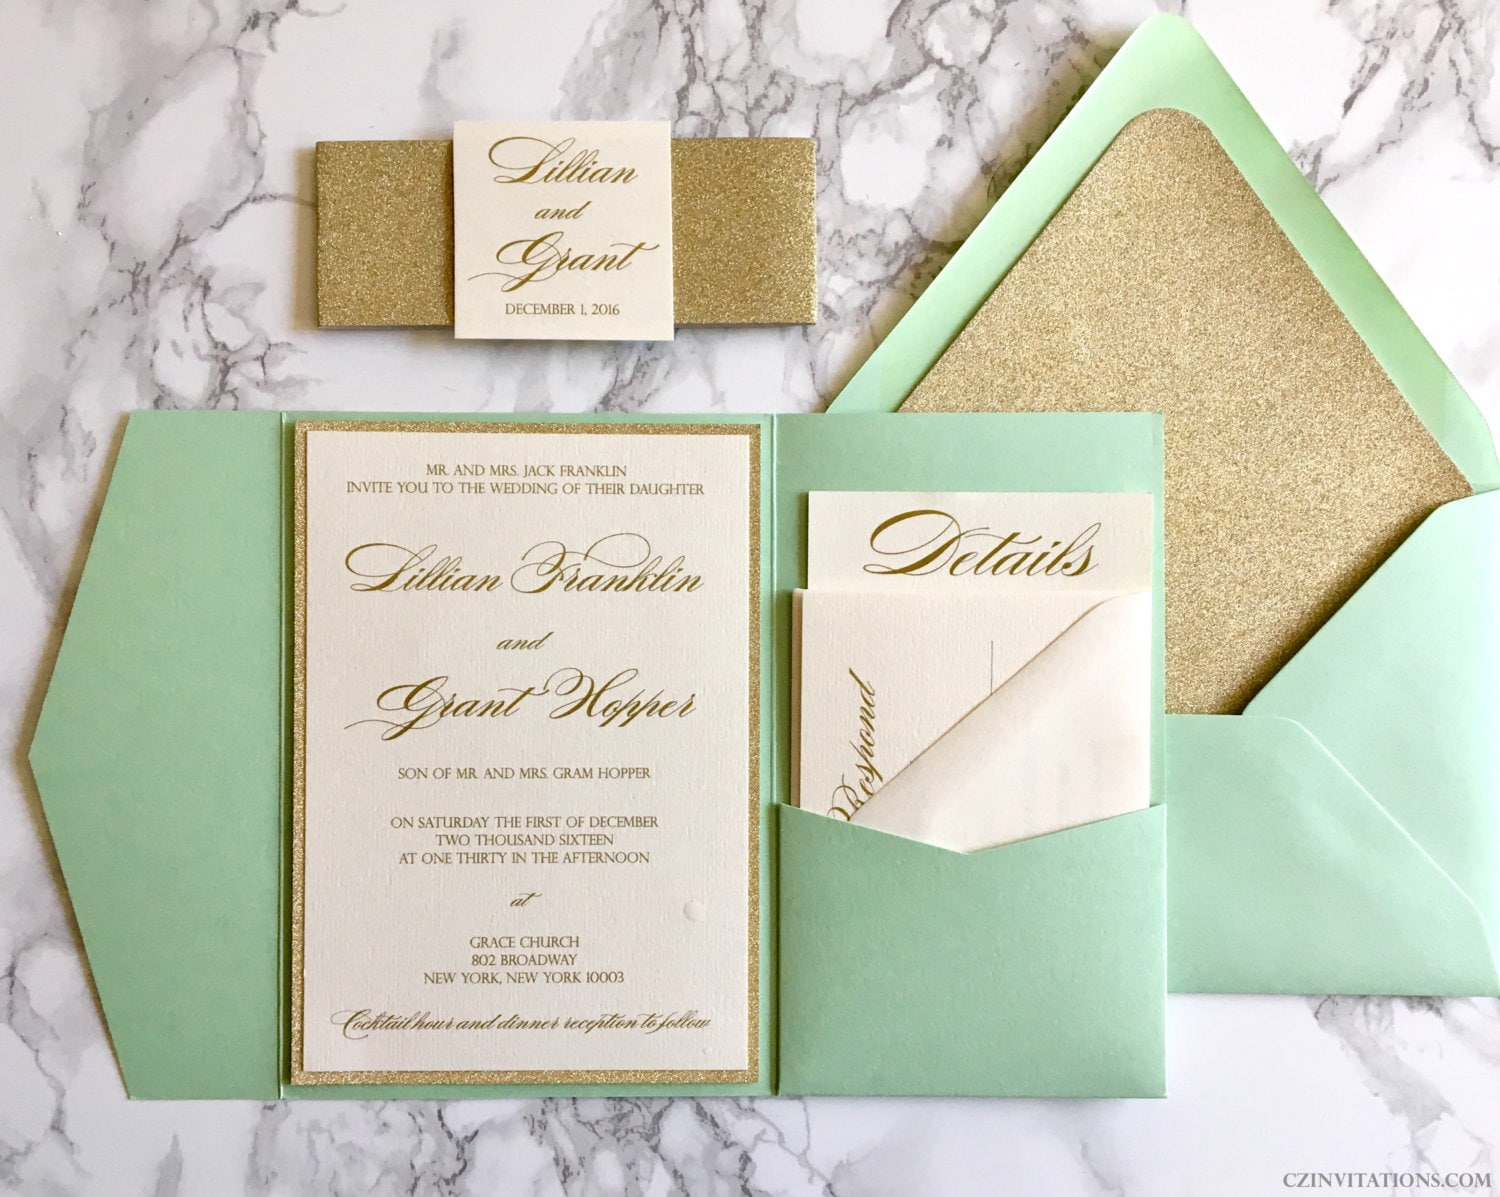 mint and gold glitter pocket wedding minted wedding invitations Mint and Gold Glitter Pocket Wedding Invitations with Glitter Belly Band Mint Wedding Invitation with Glitter Gold and Mint Invitations